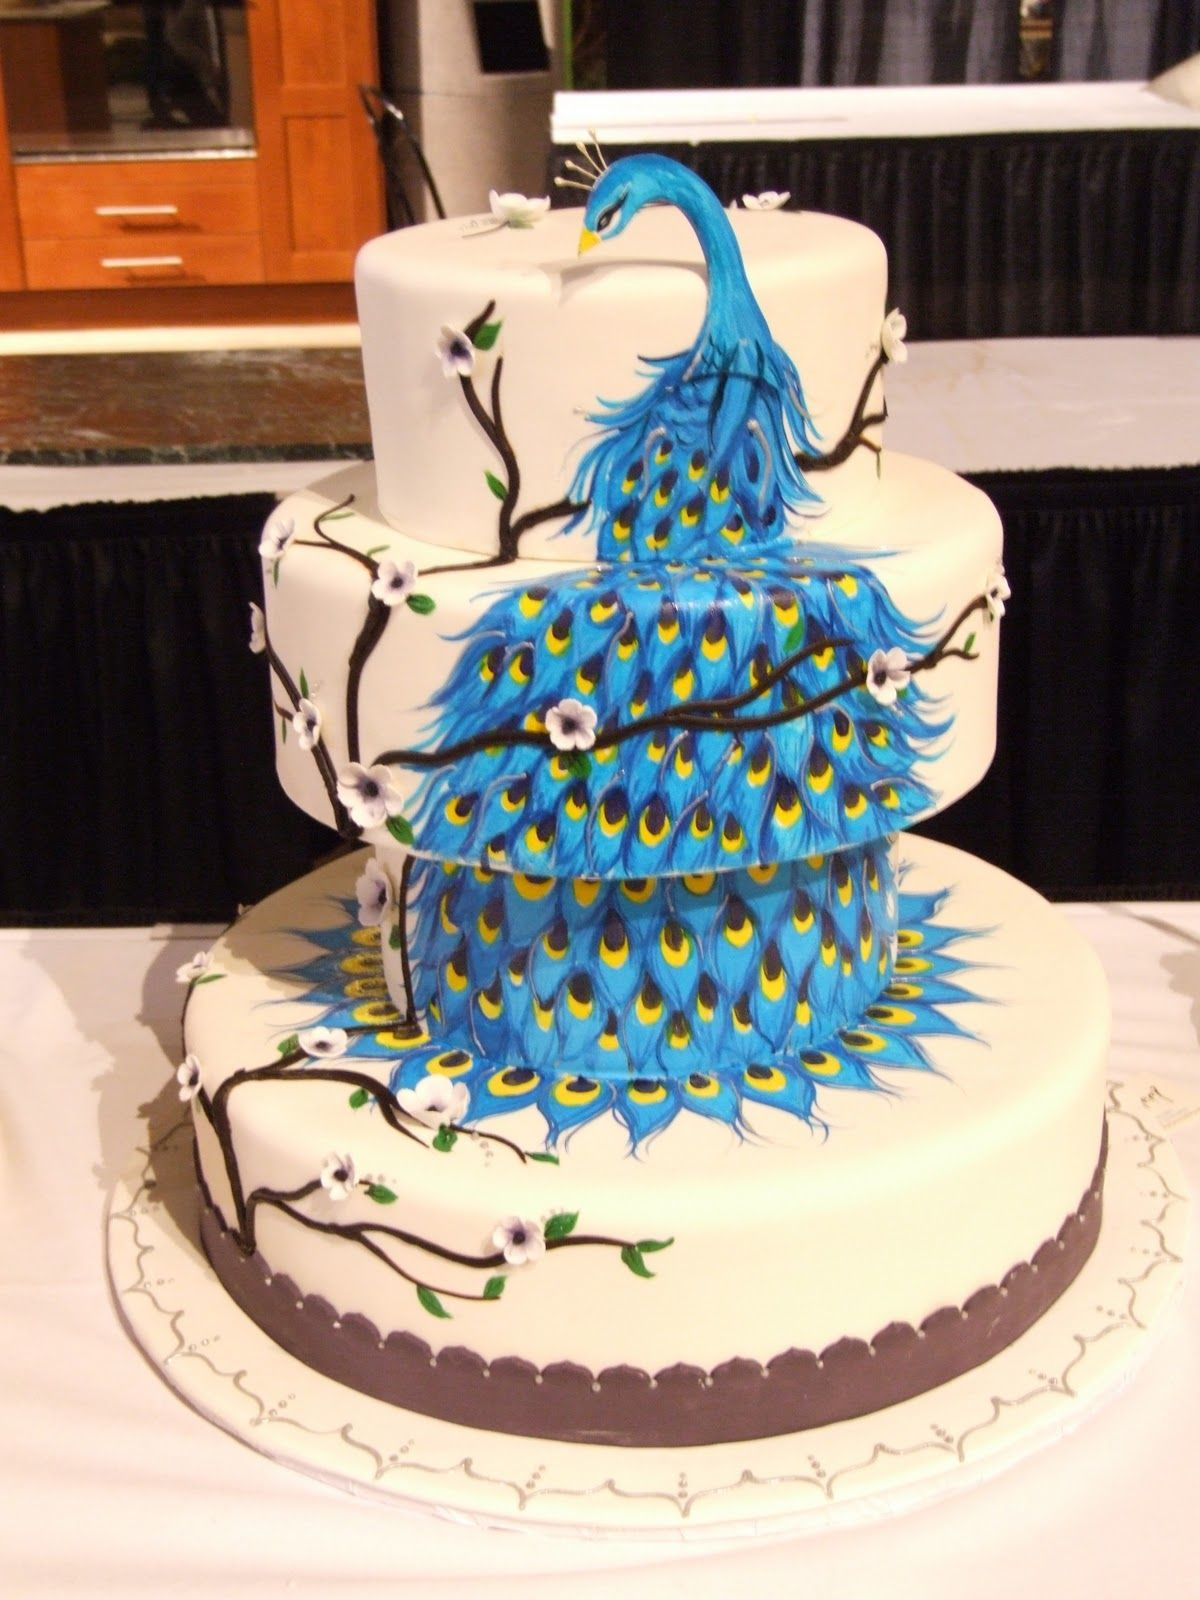 Best Advanced Cake Decorating Books : Best Cake Decorating Websites - http://www.highfivesites ...